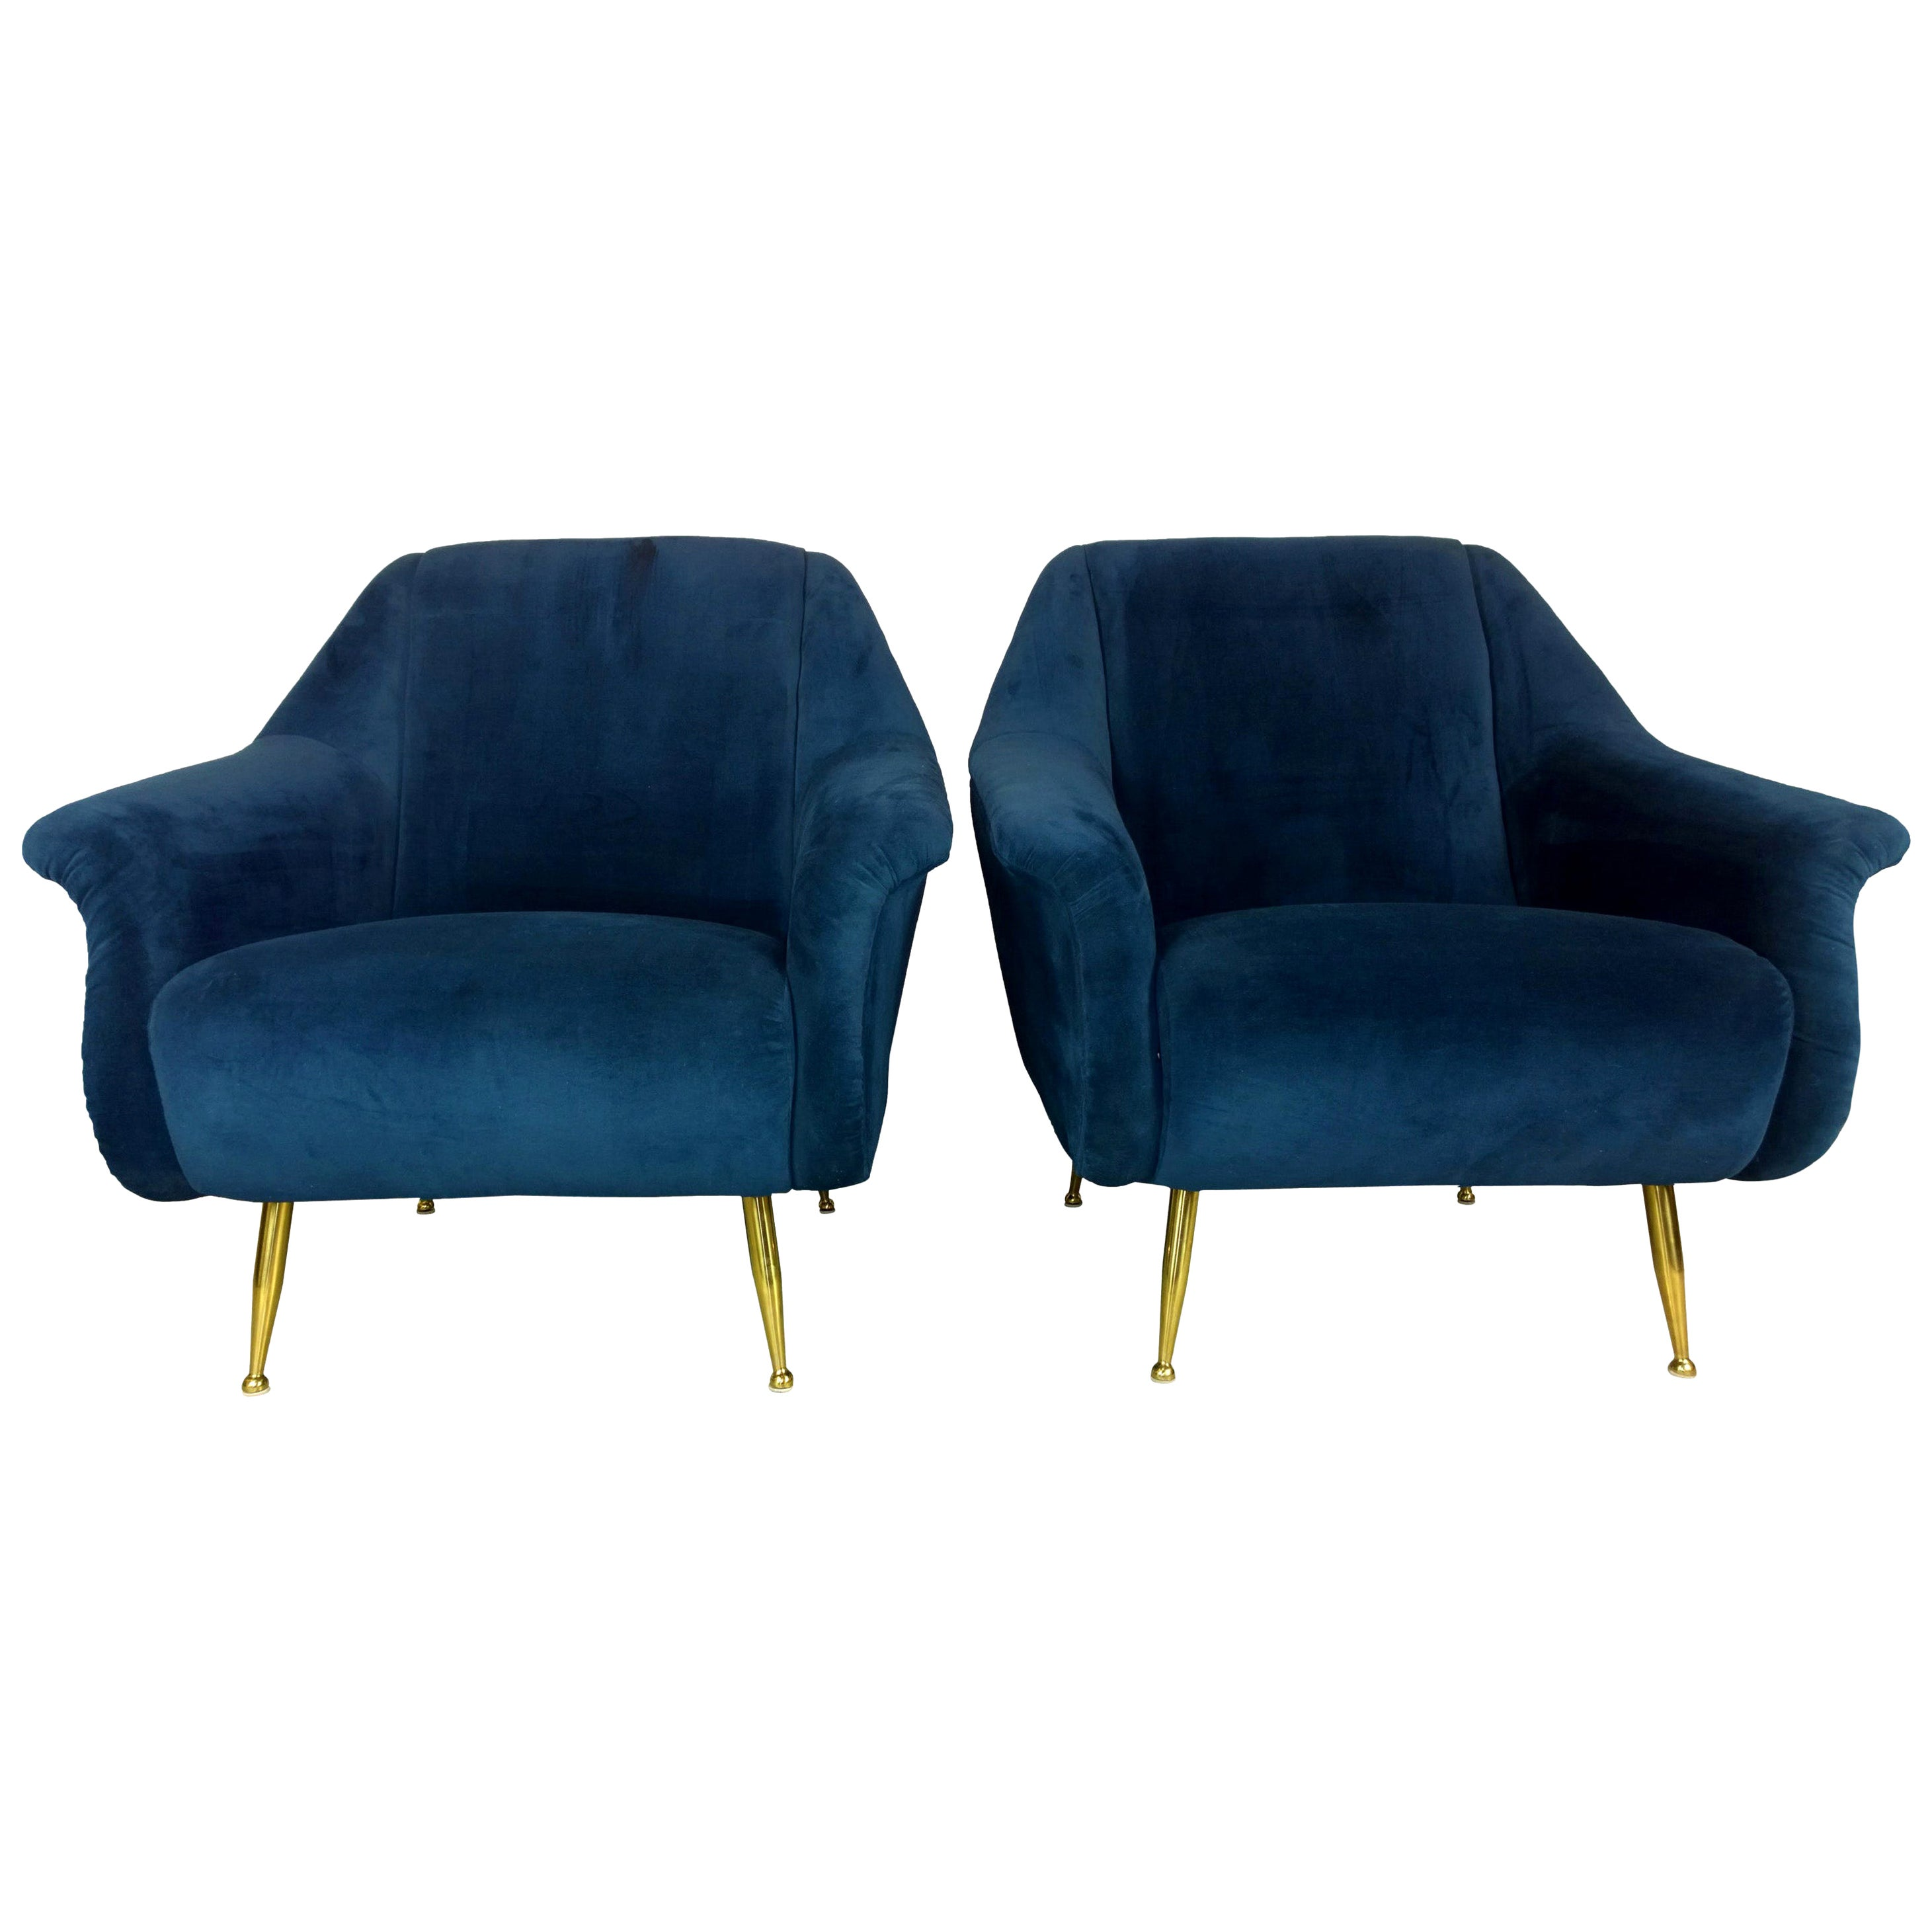 Pair of Zanuso Style Navy Blue Velvet and Brass Legs Lounge or Armchairs